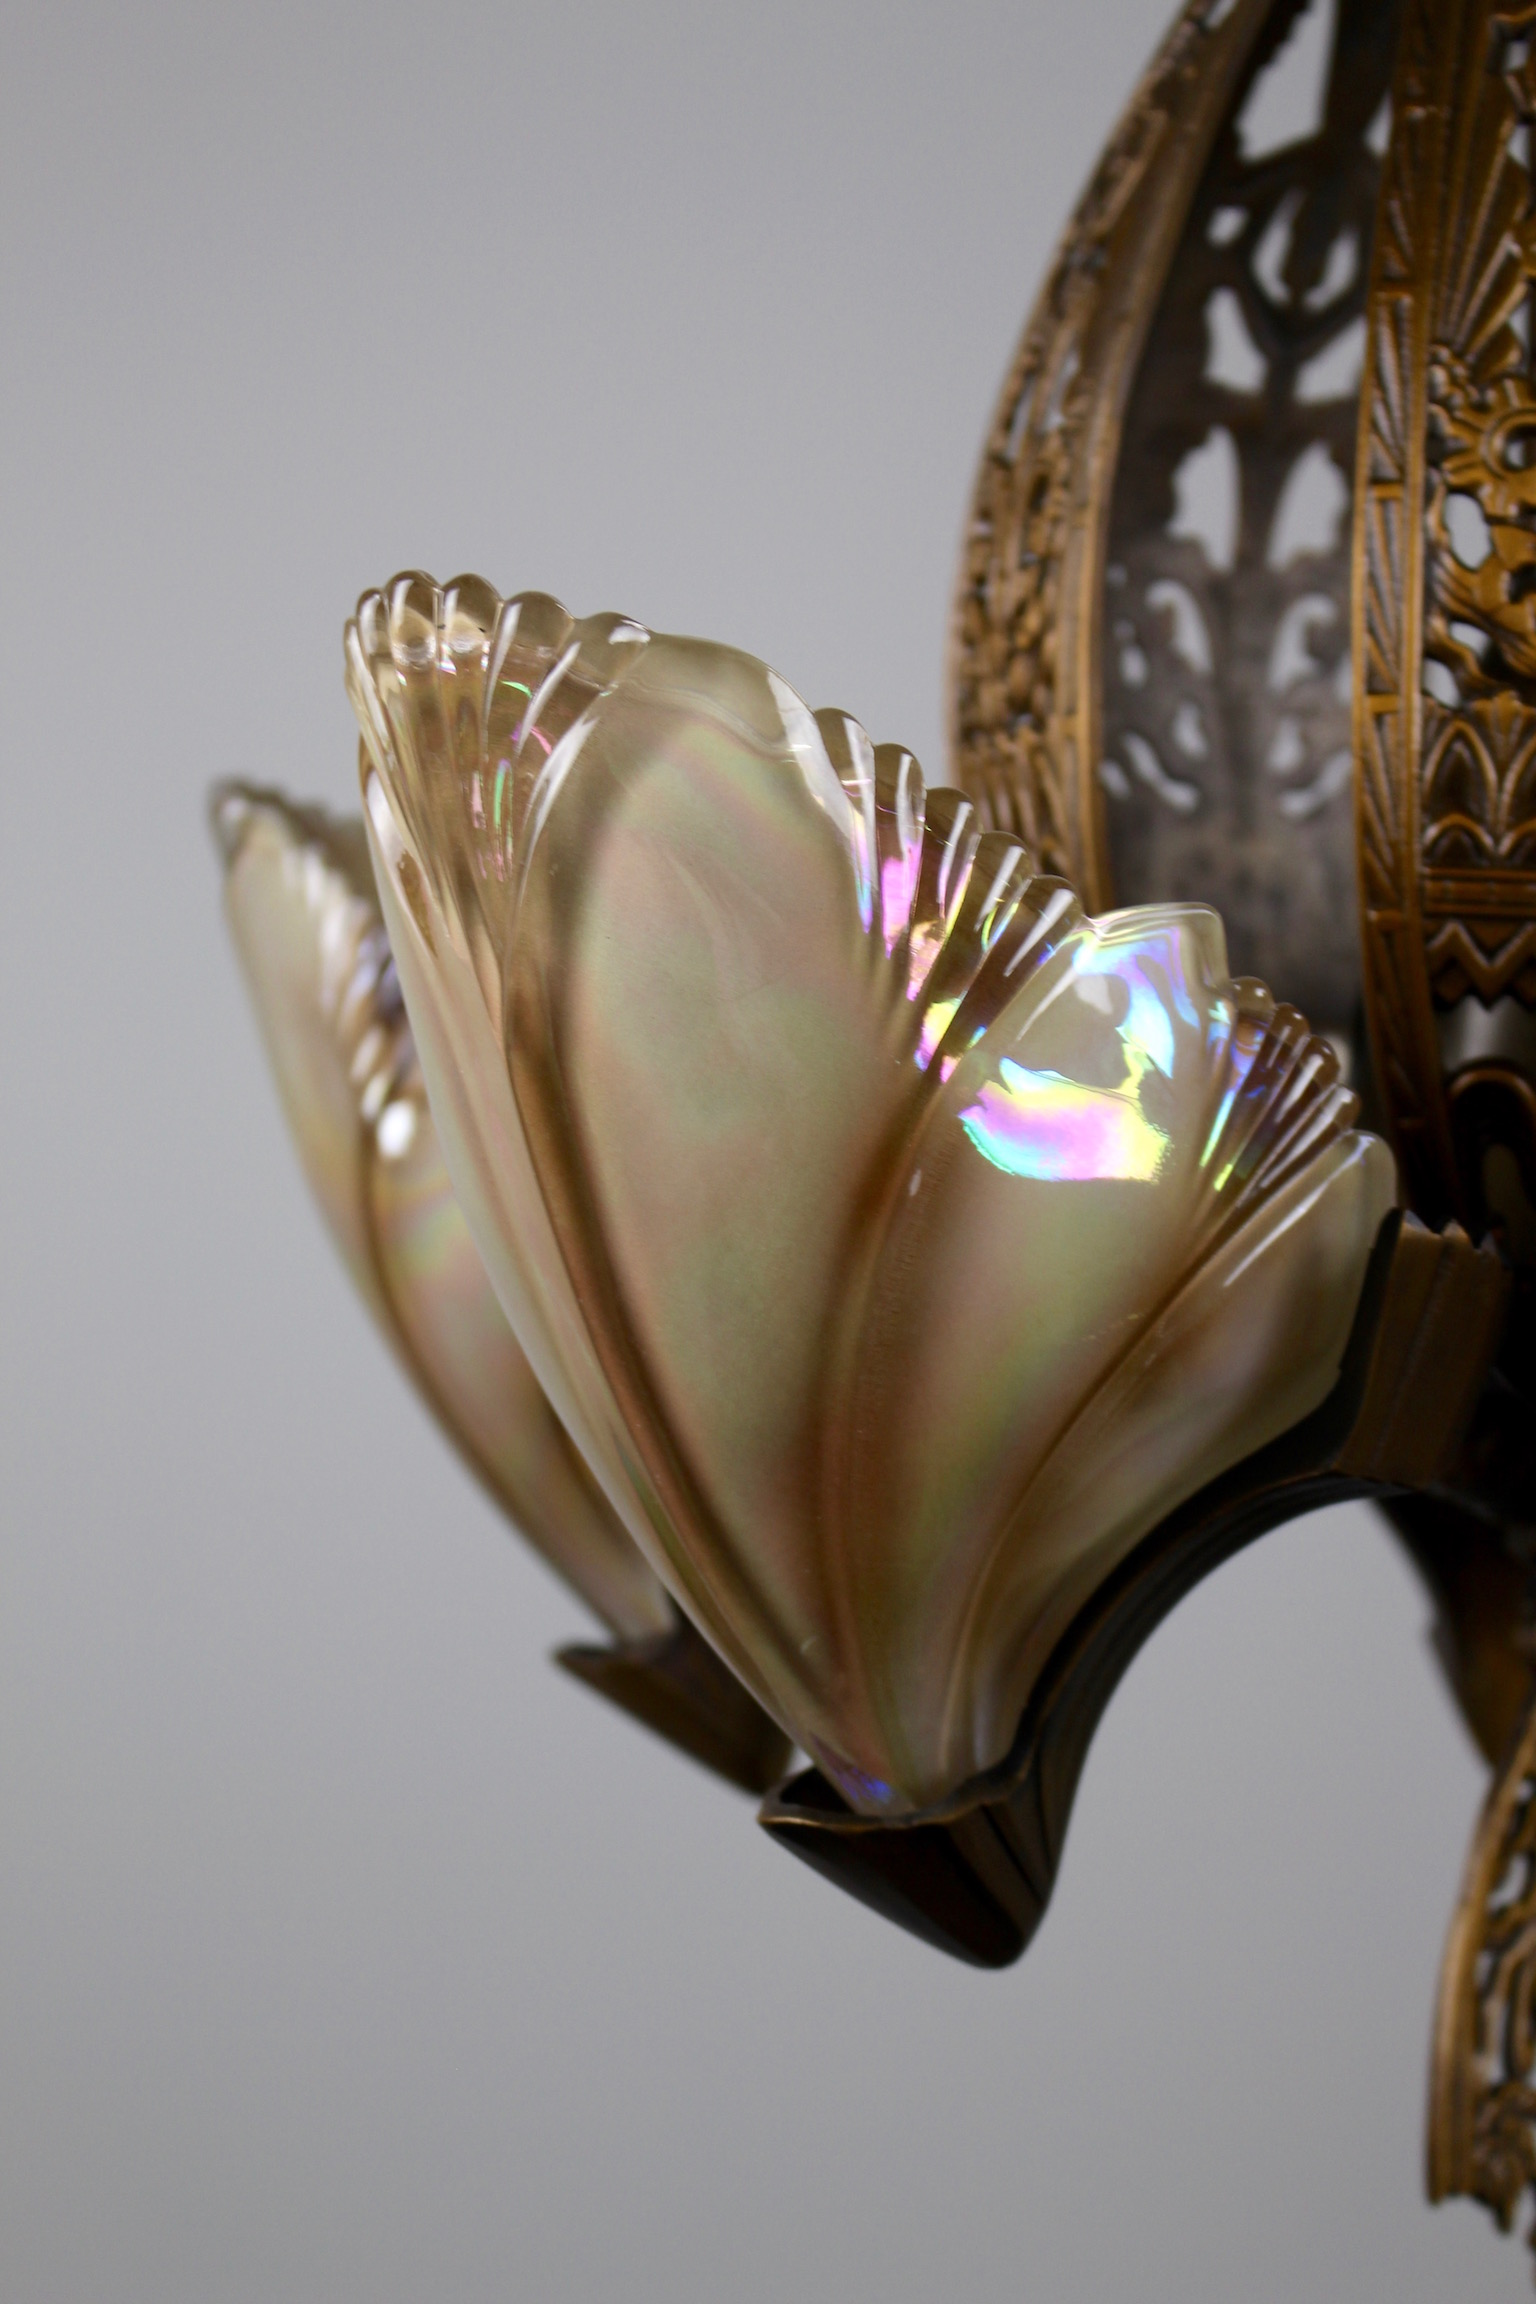 Original Art Deco Fixture With Iridescent Oyster Coloured